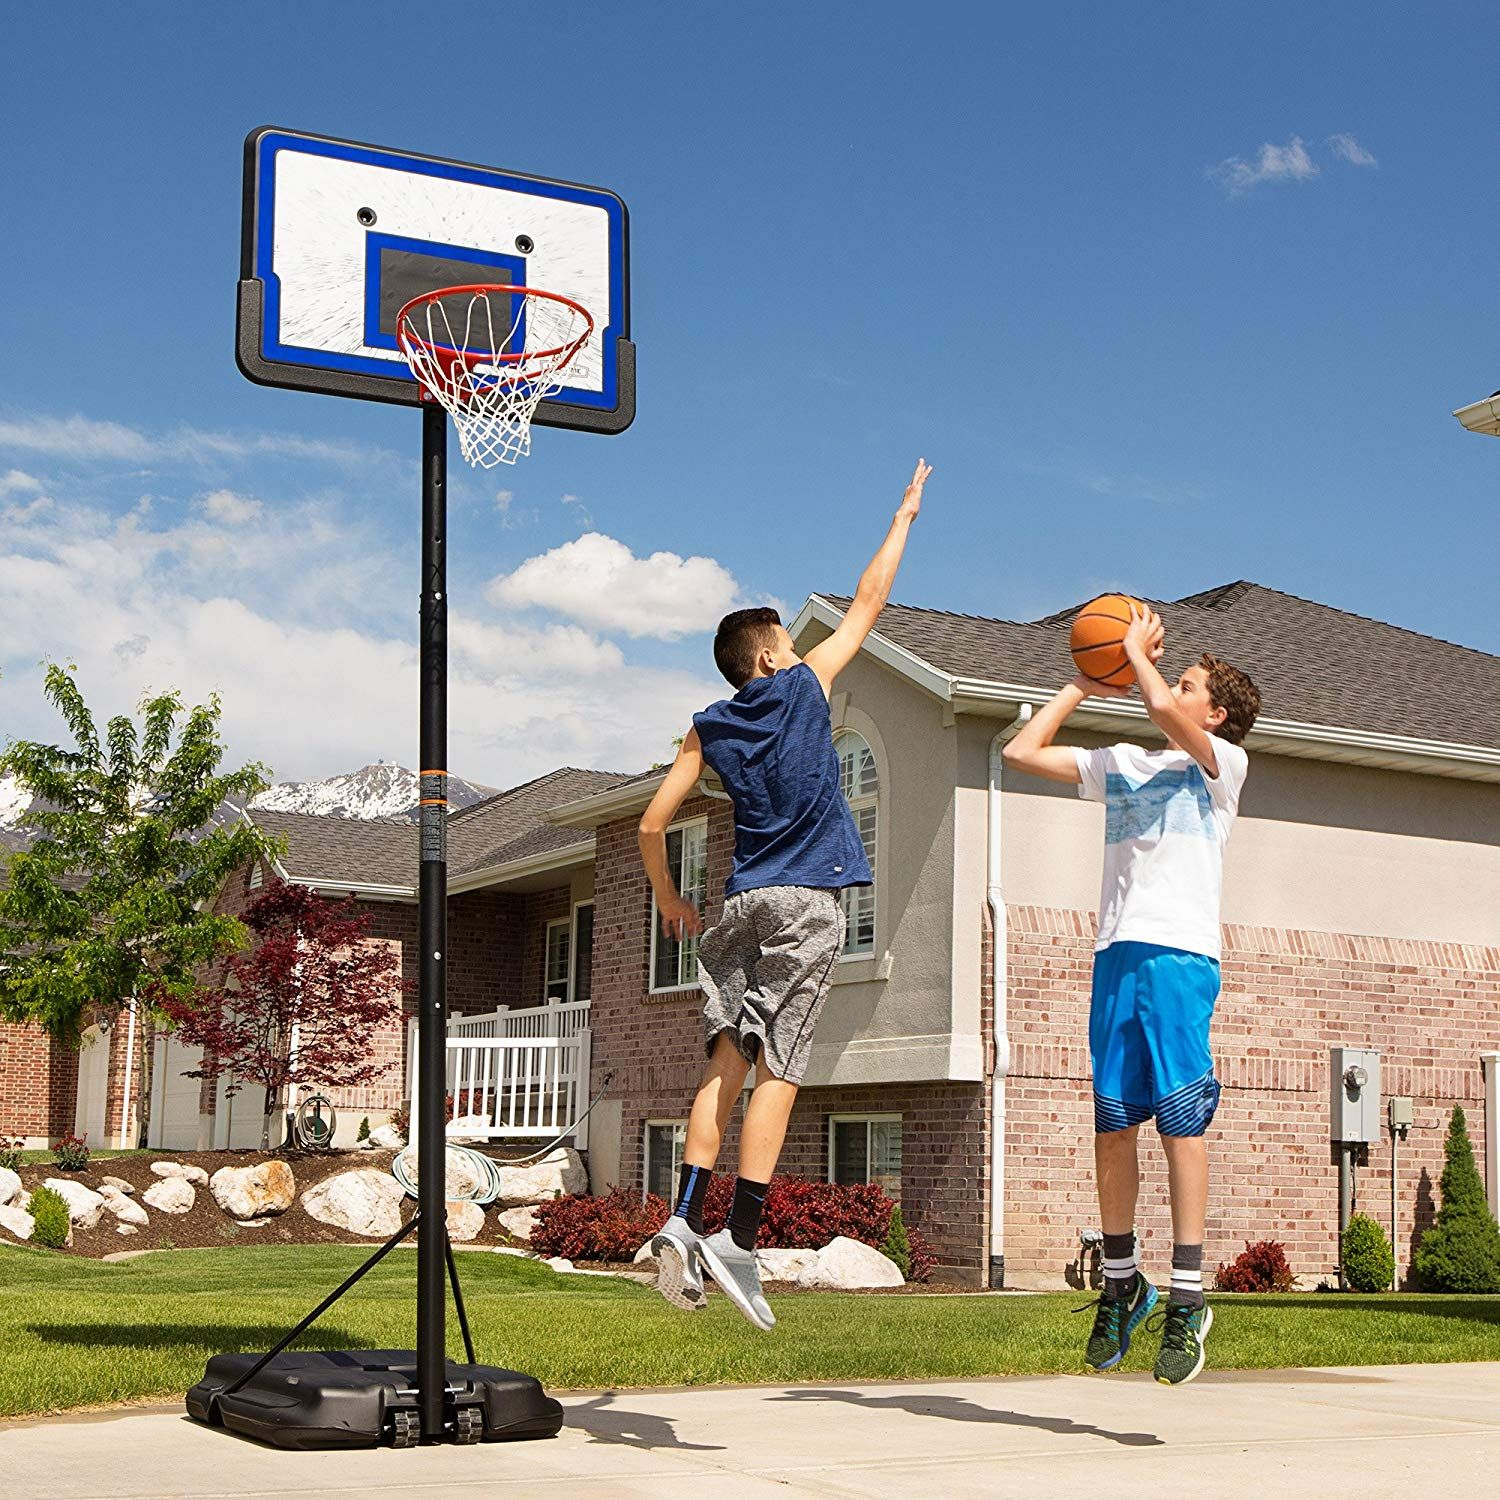 Lifetime 1221 Pro Court Height Adjustable Portable Basketball System 44 Inch Backboard Portable Basketball Hoop Basketball Systems Basketball Goals